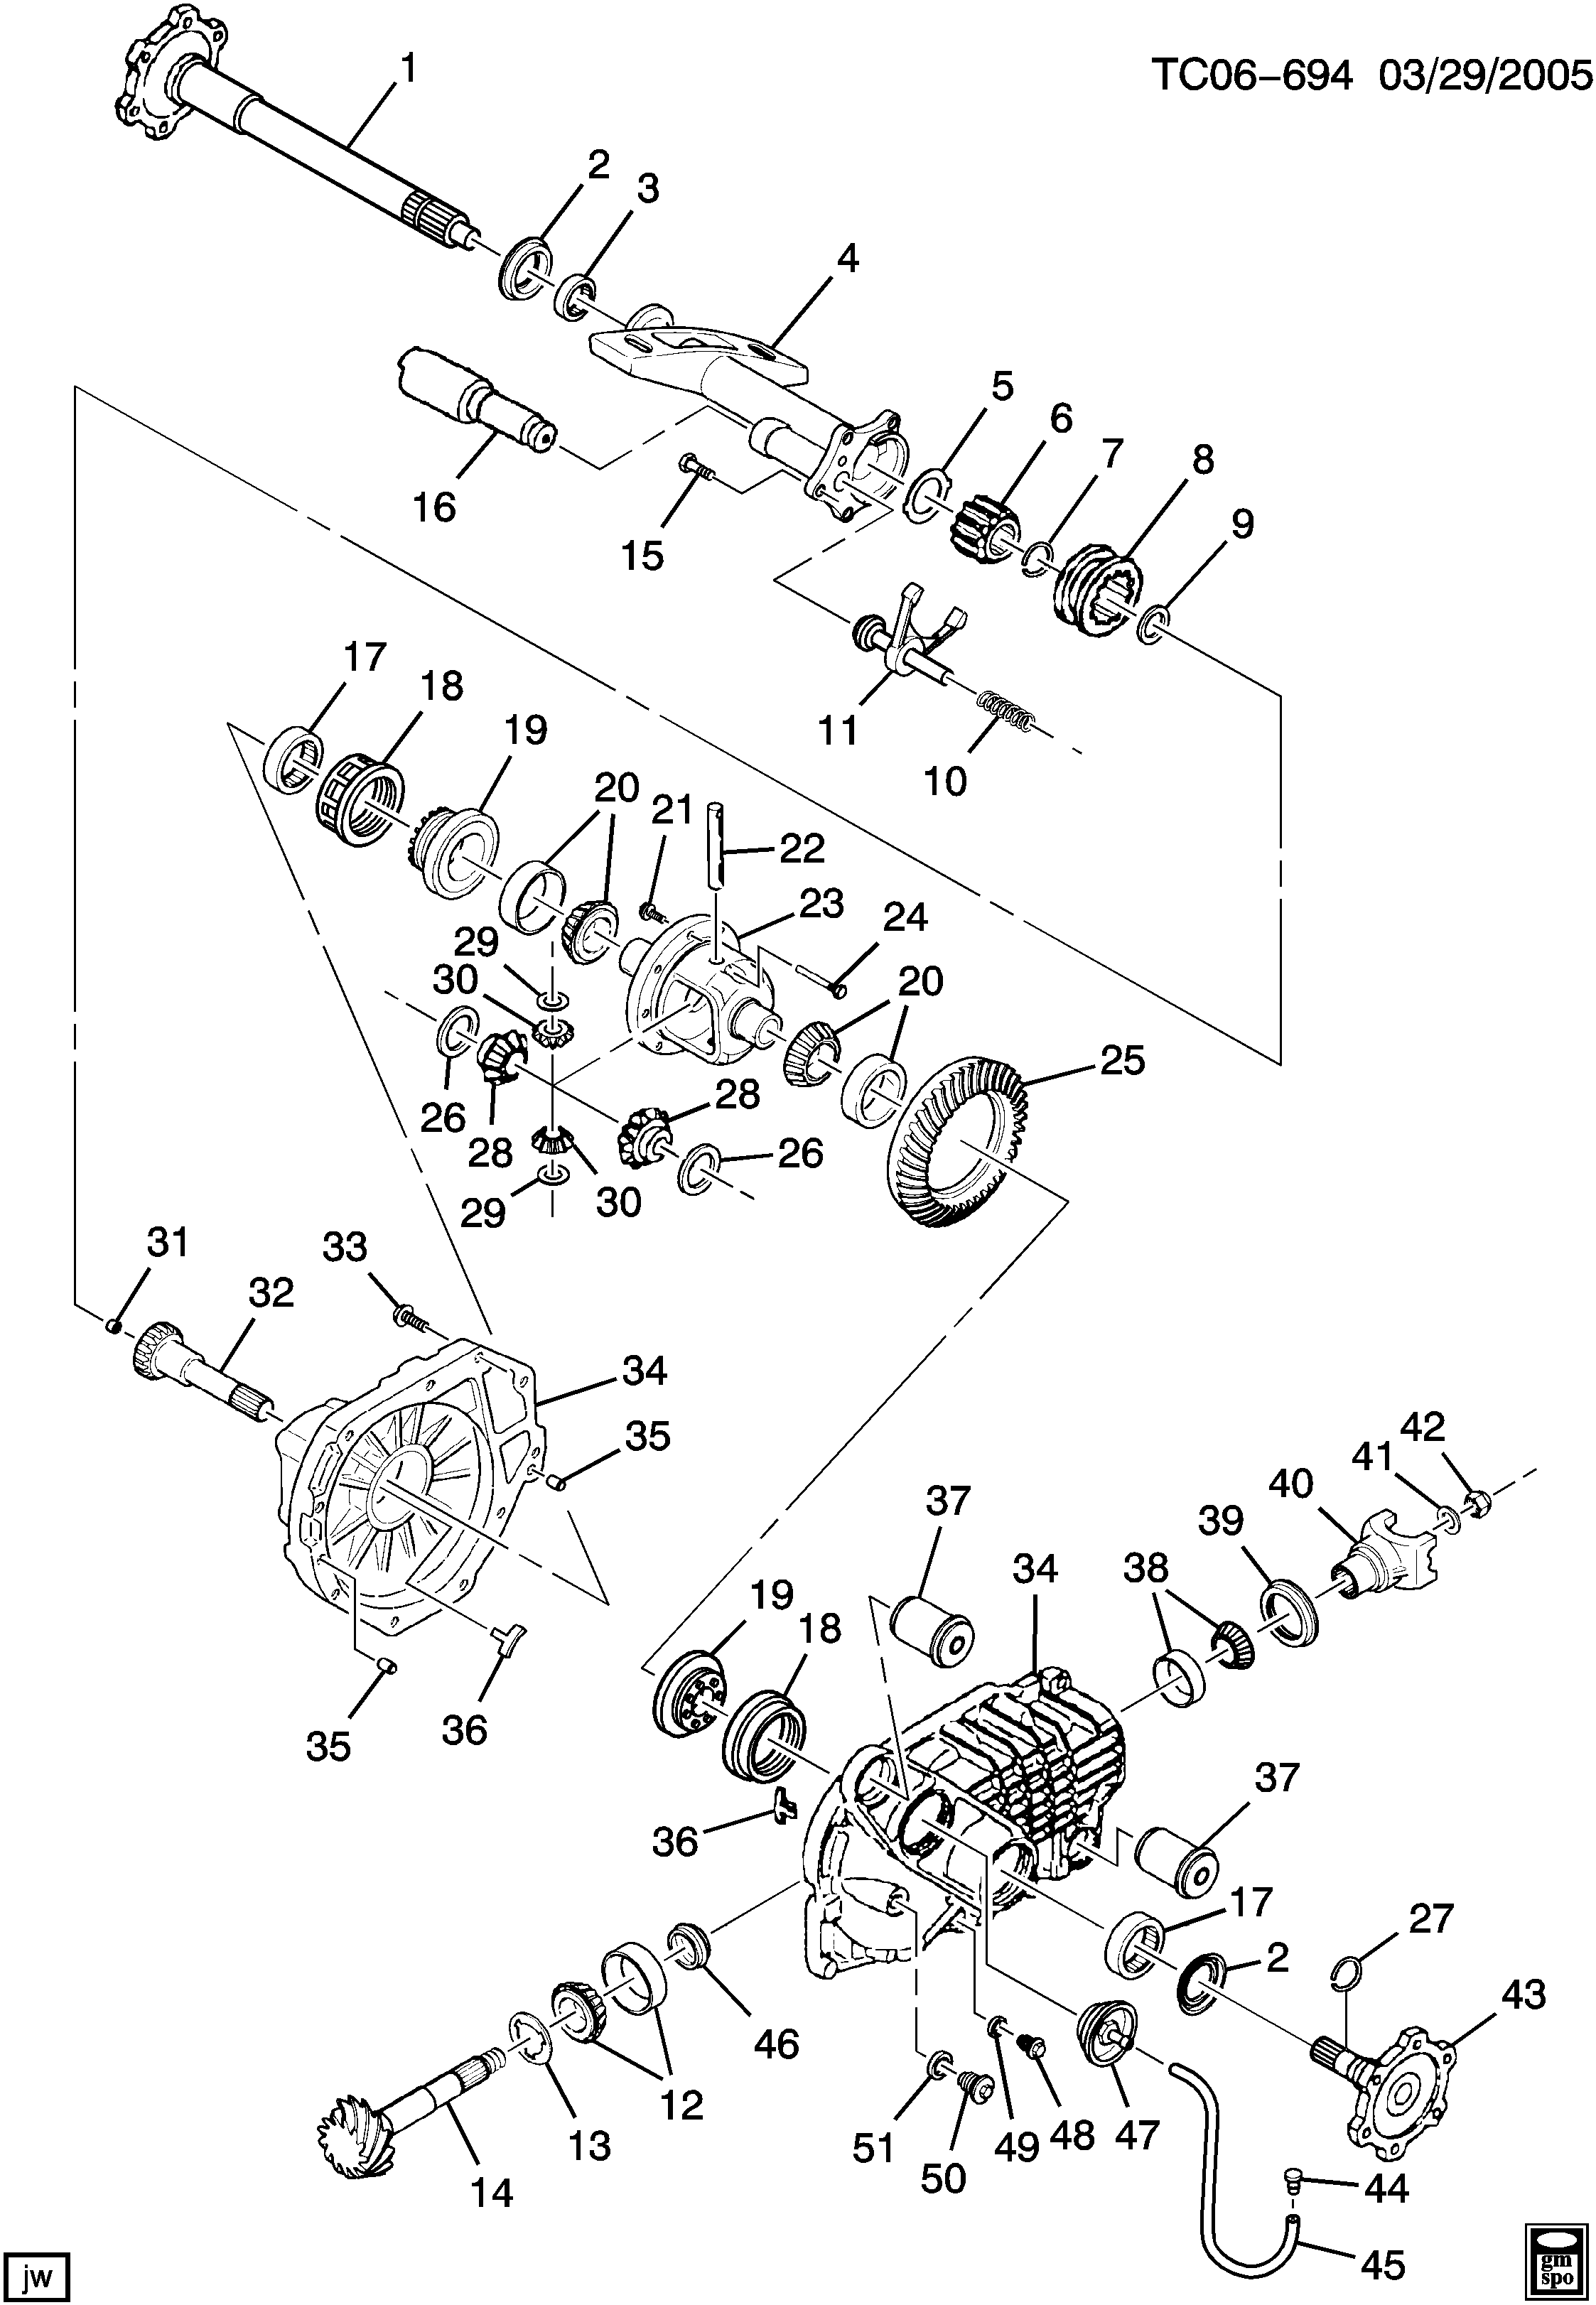 2005 chevy silverado 1500 front differential schematic diy rh broadwaycomputers us